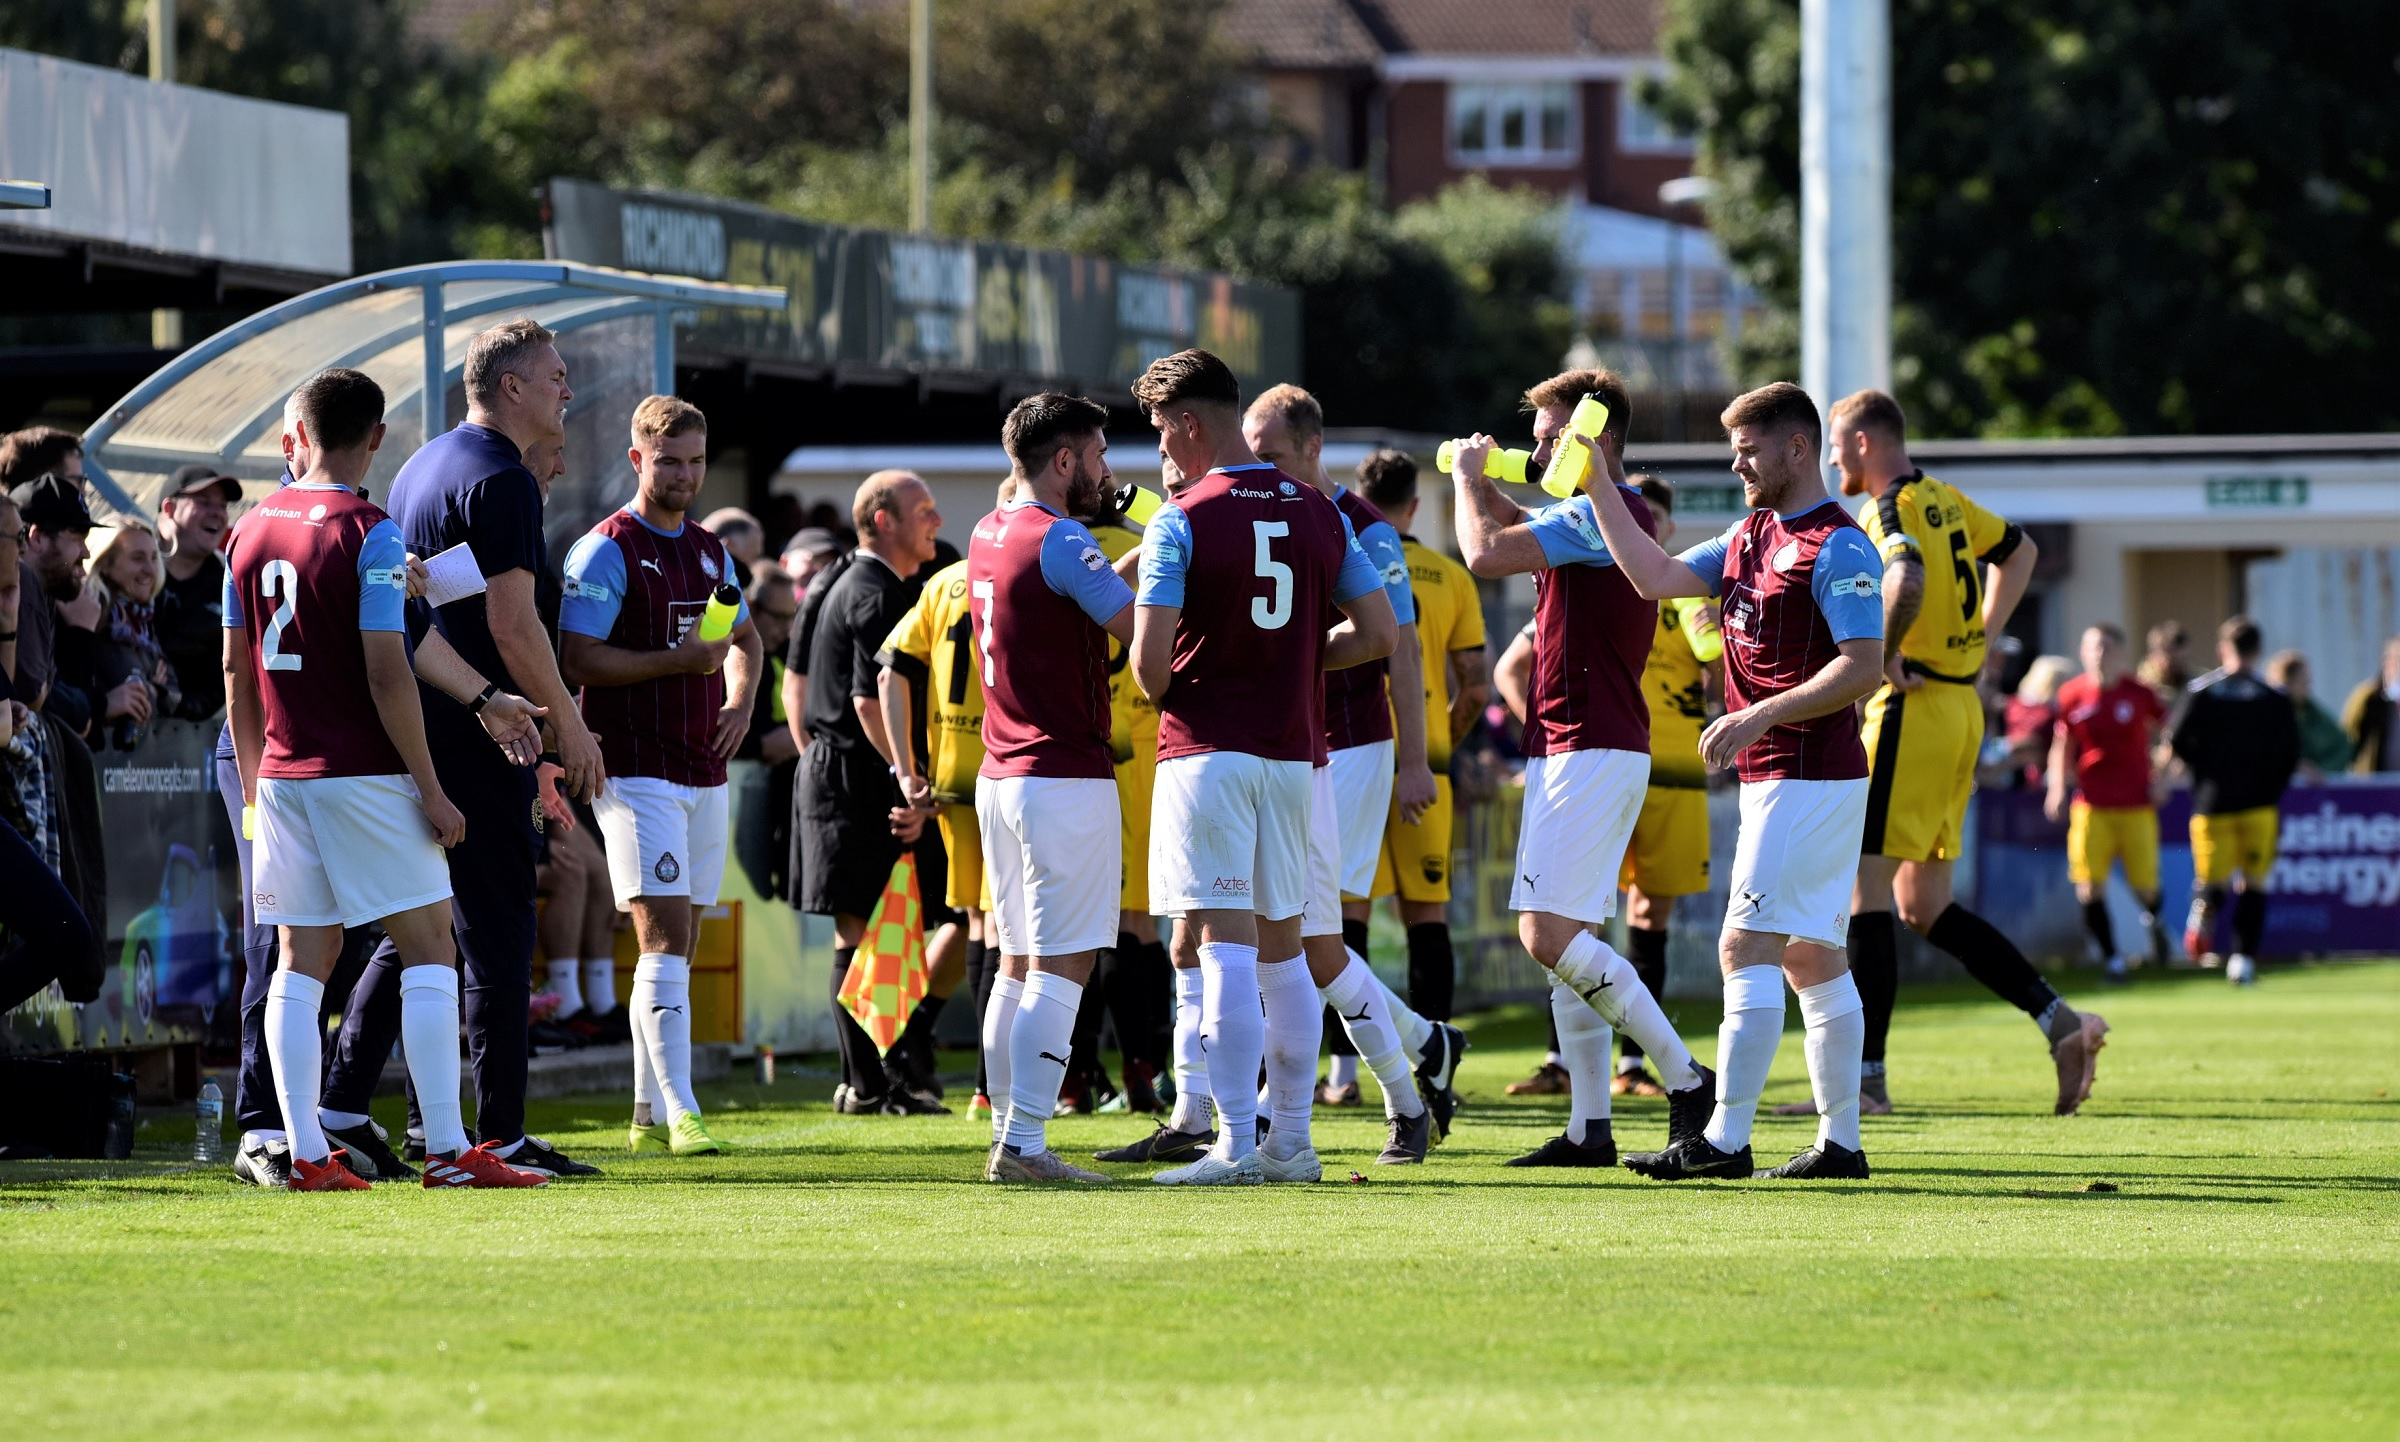 Preview: South Shields vs Basford United, NPL Premier Division